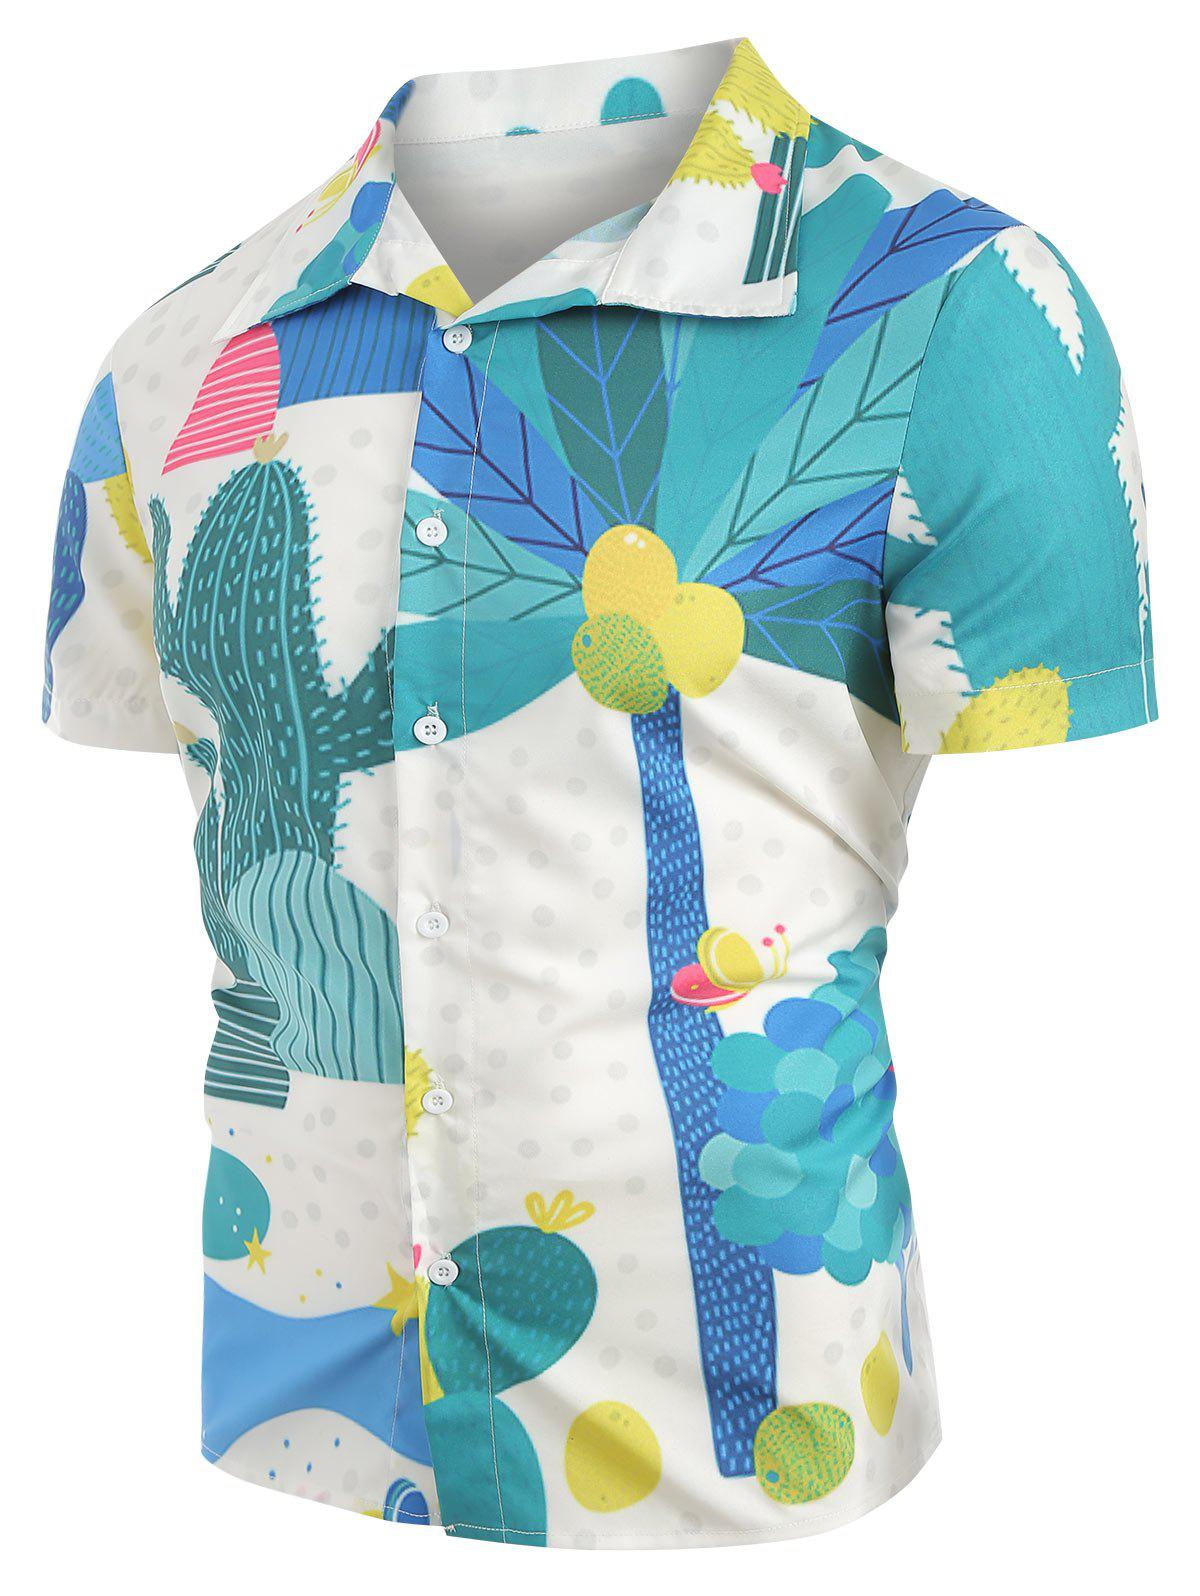 Cactus Plant Pattern Leisure Shirt, Macaw blue green